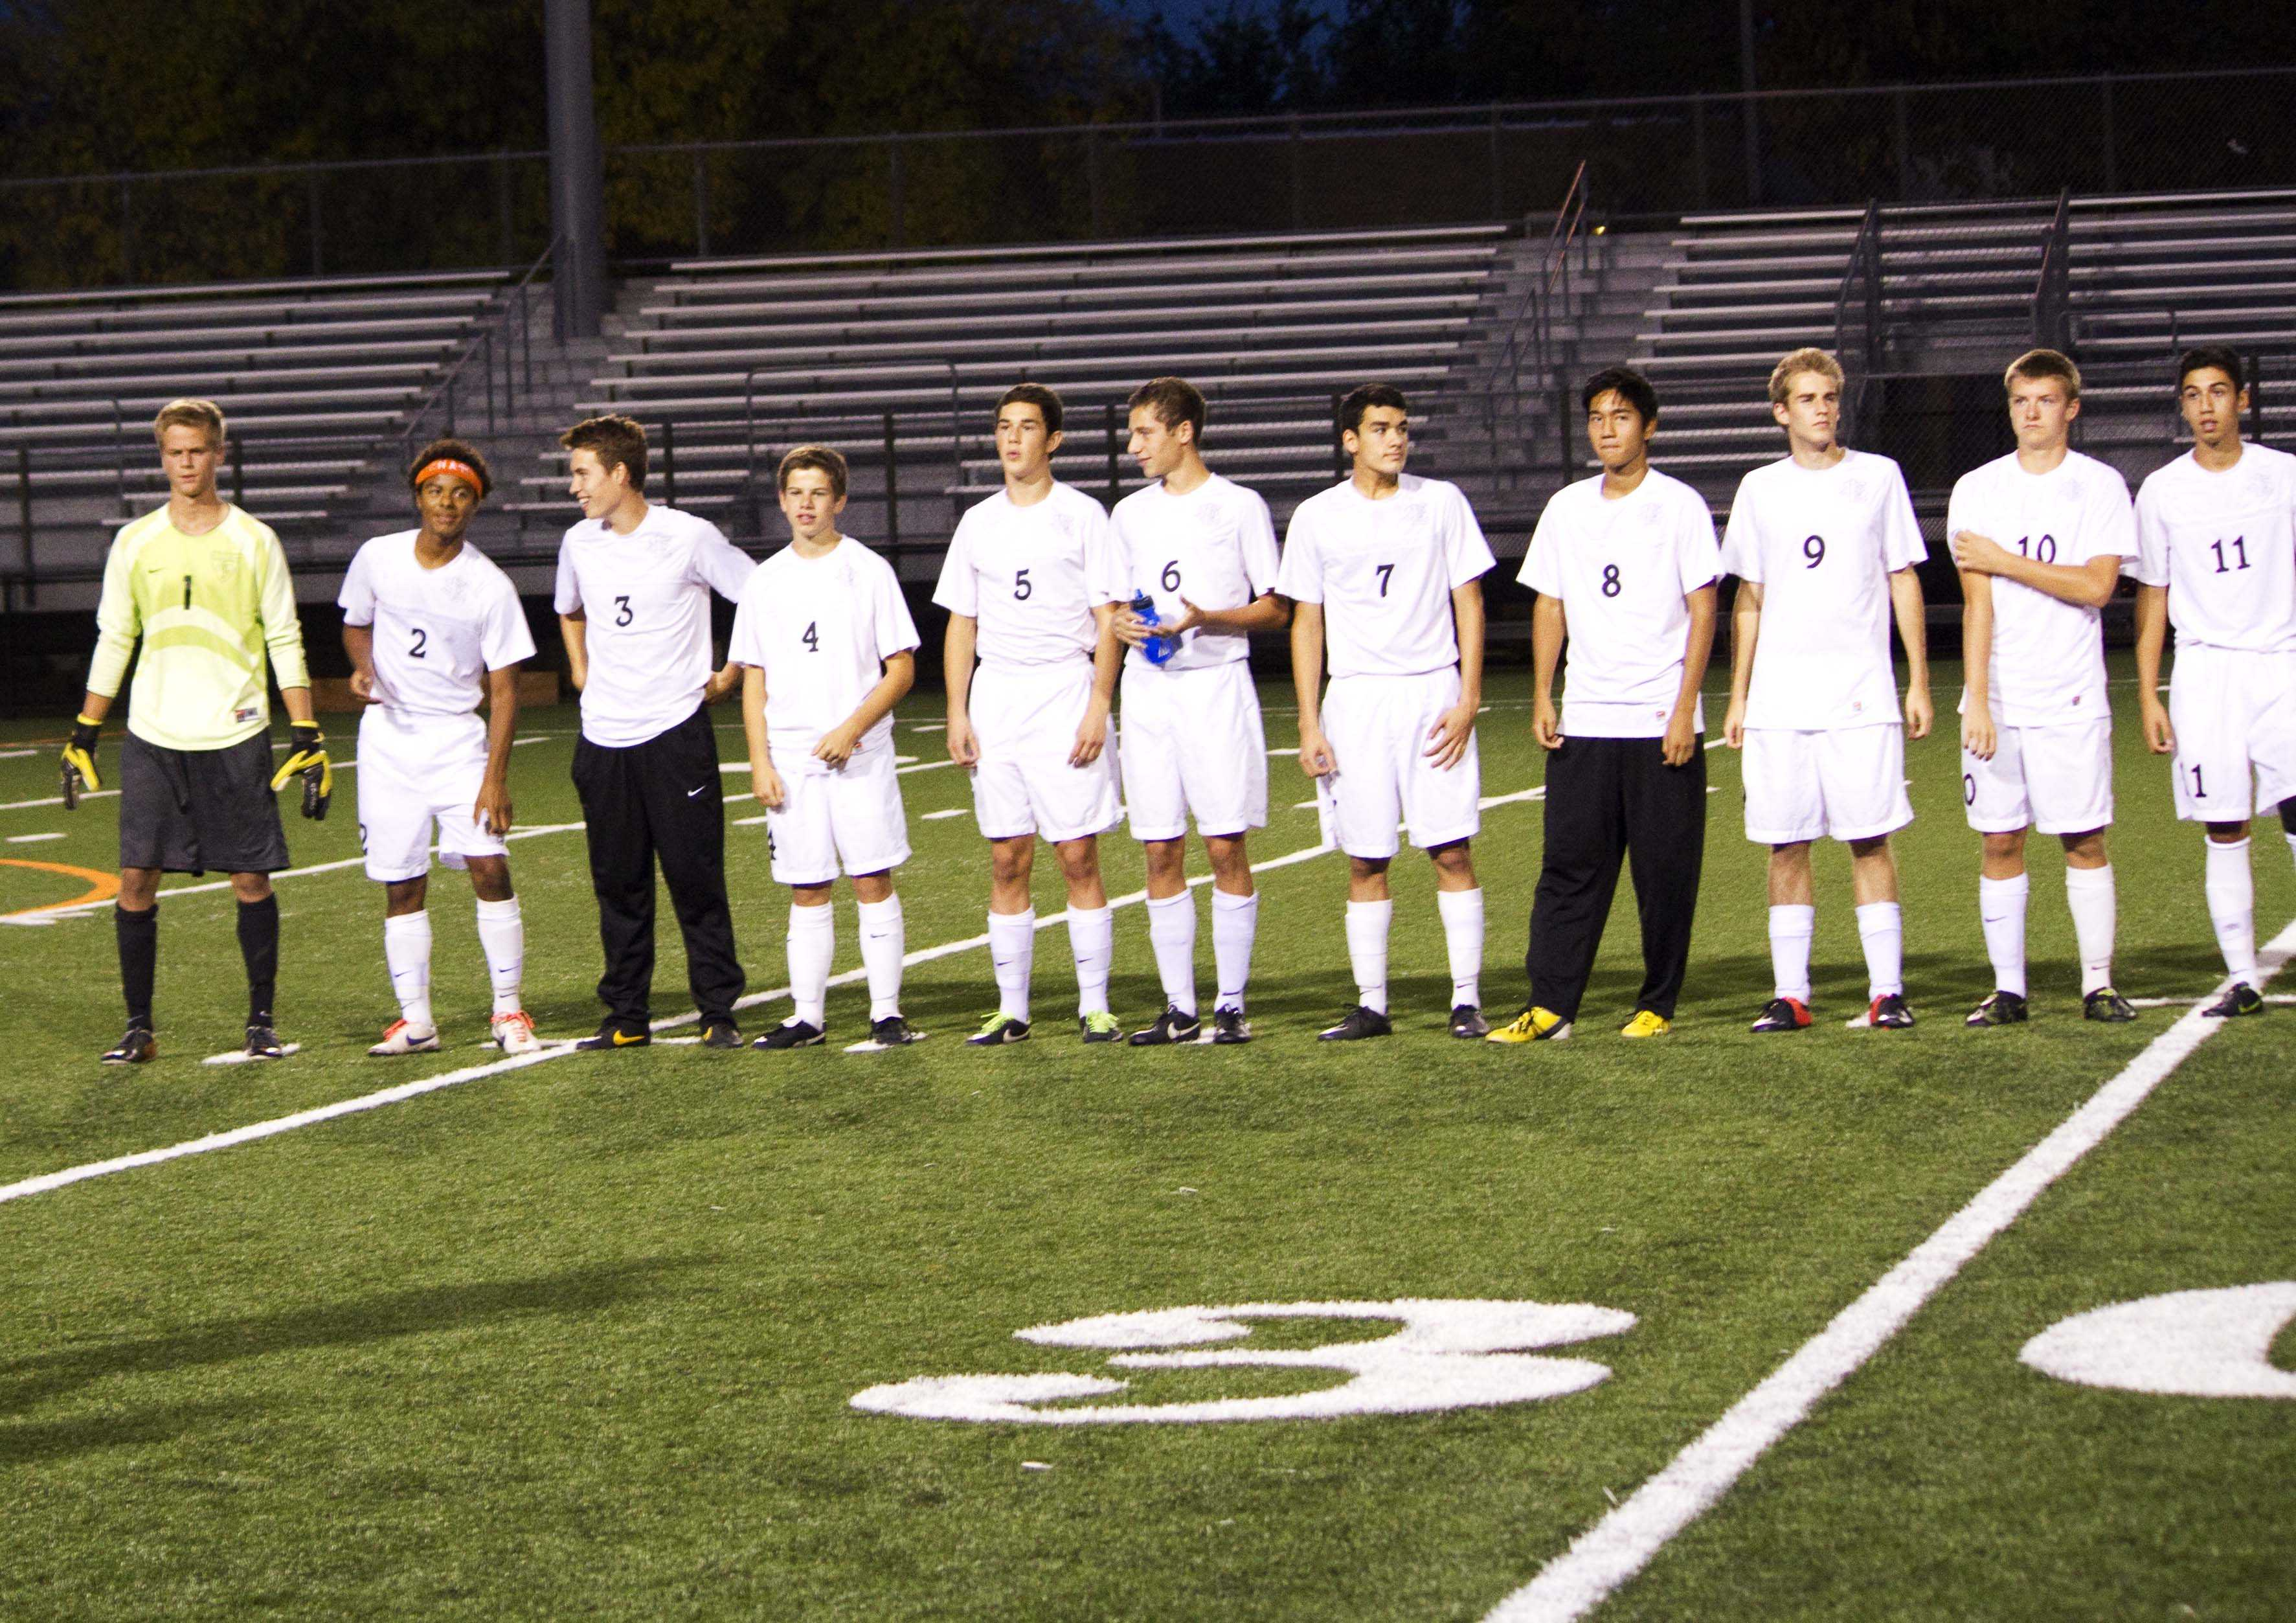 Senior Evan McManus (9) joins his teammates in the starting lineup during a varsity soccer game last  fall.